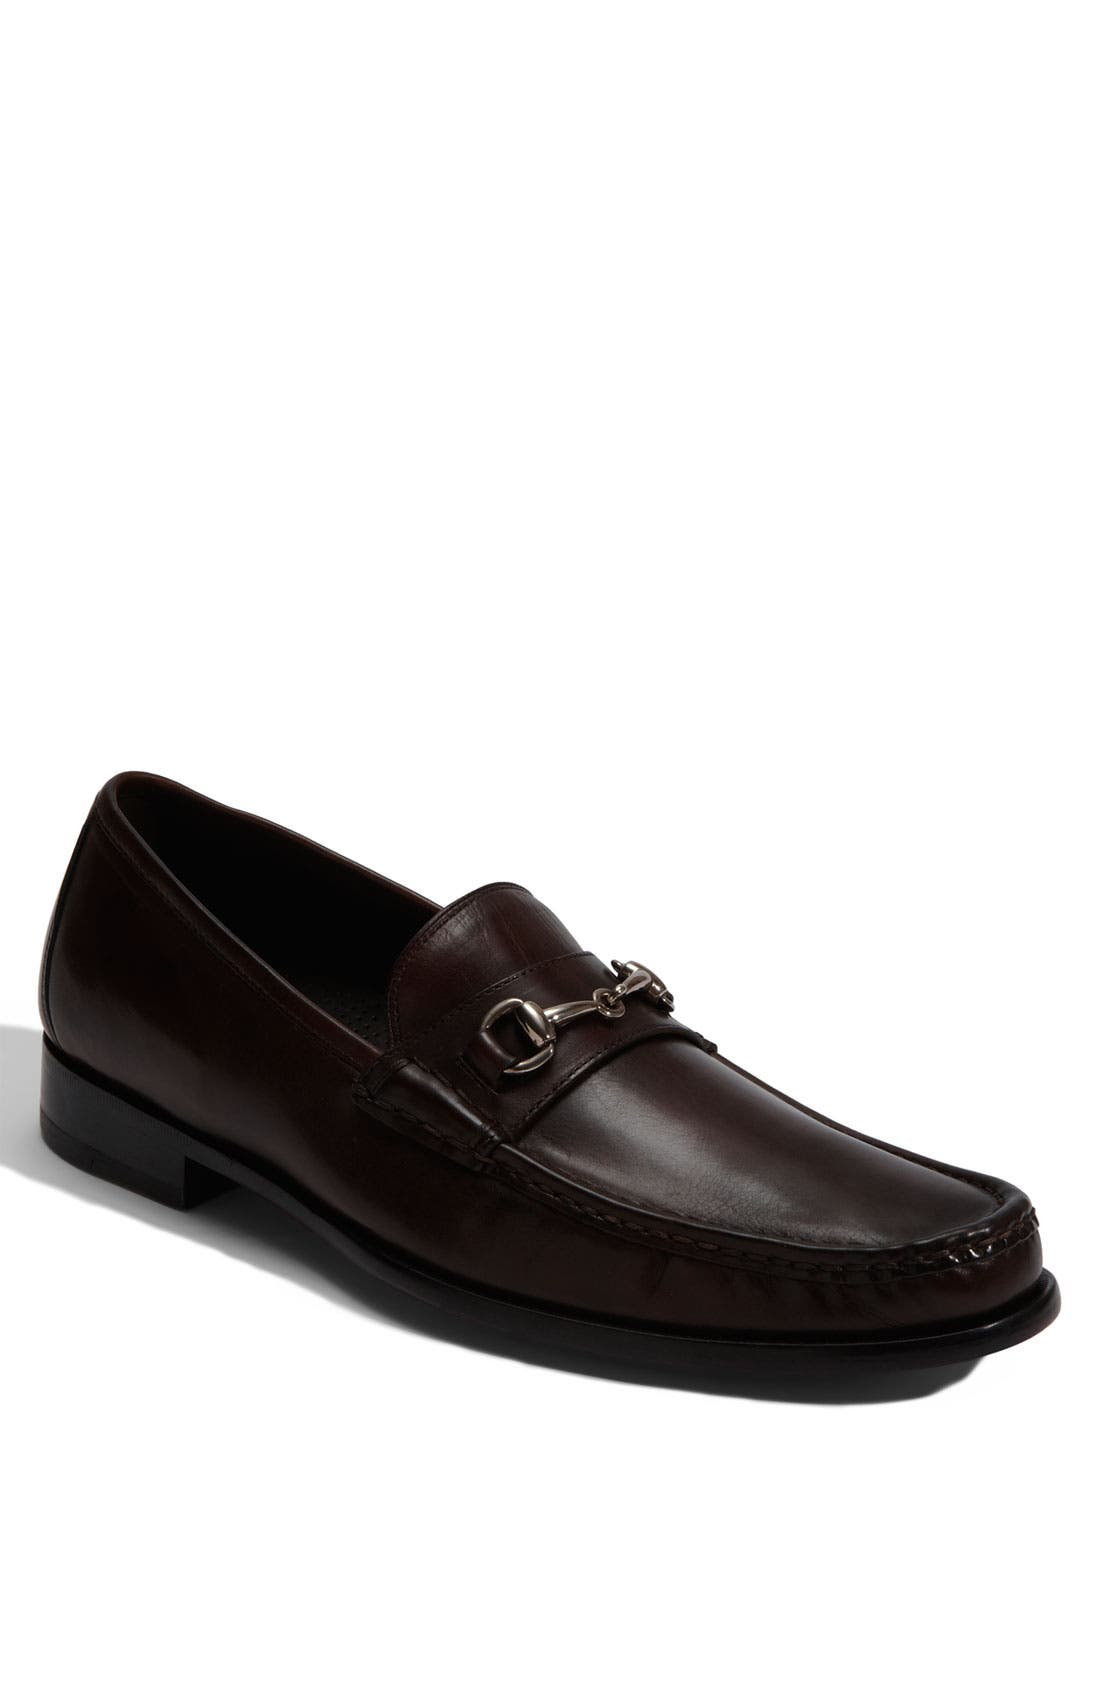 Main Image - Cole Haan 'Air Aiden' Loafer